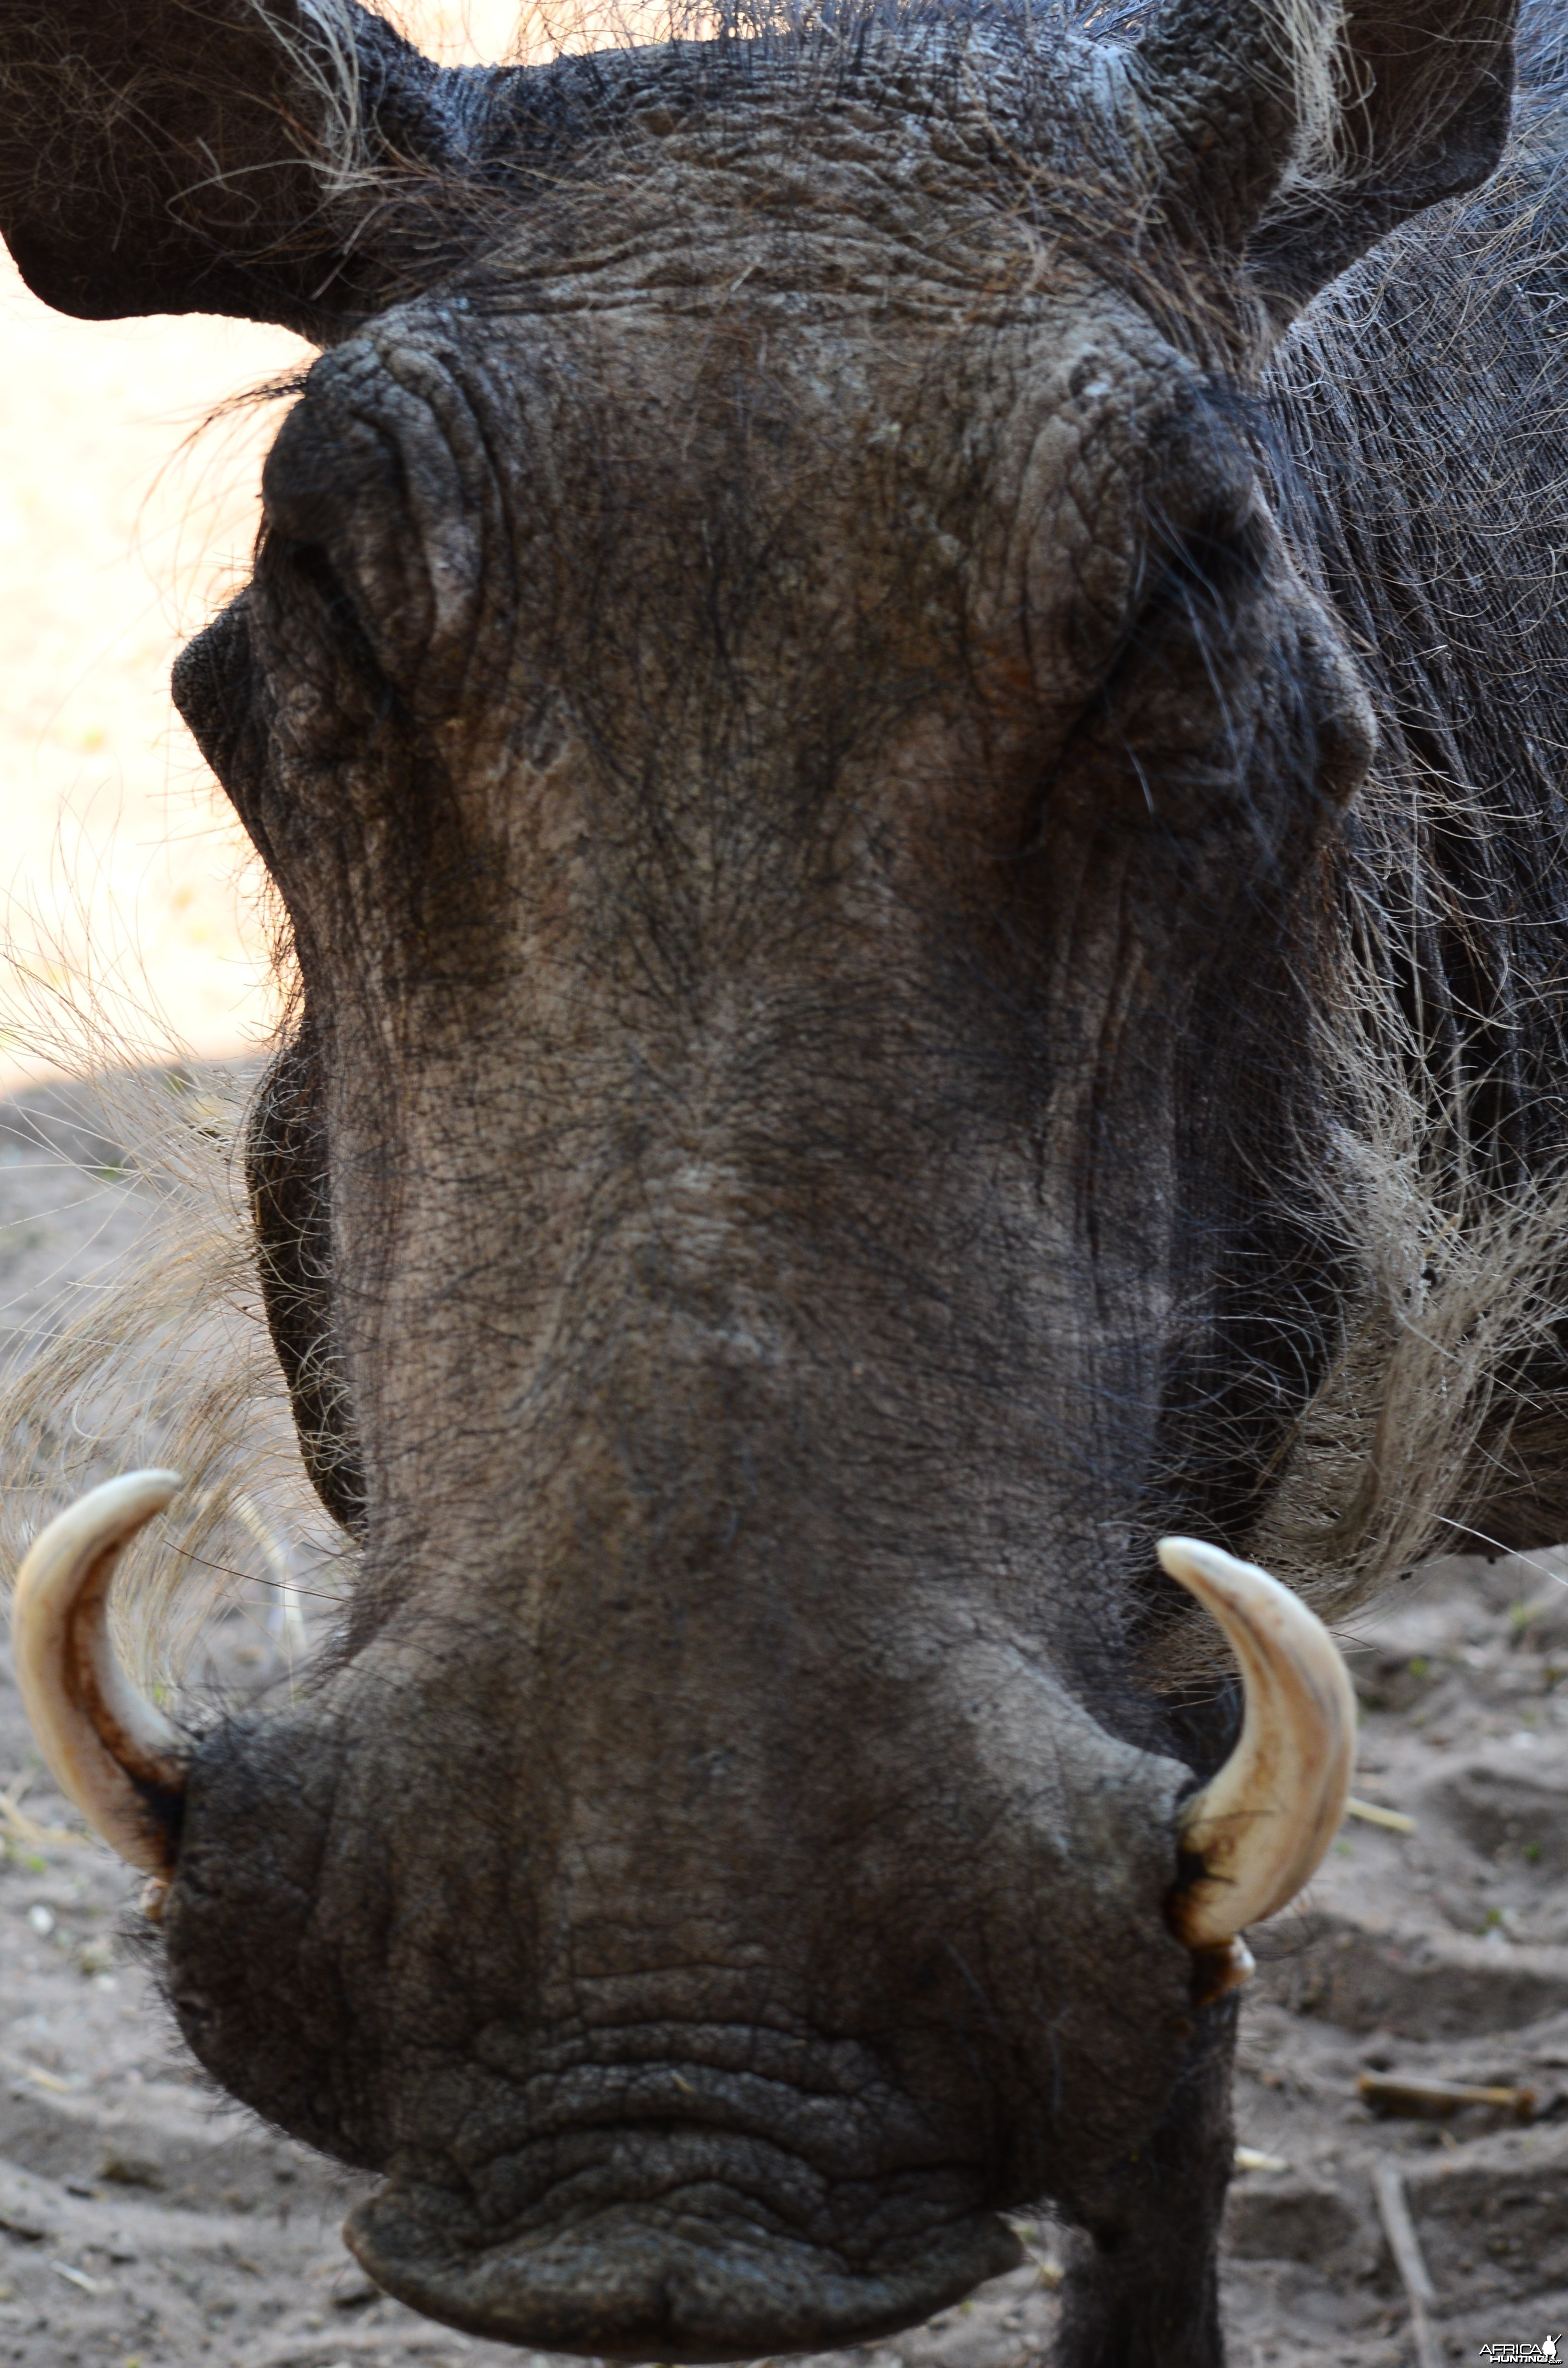 warthog from the hide